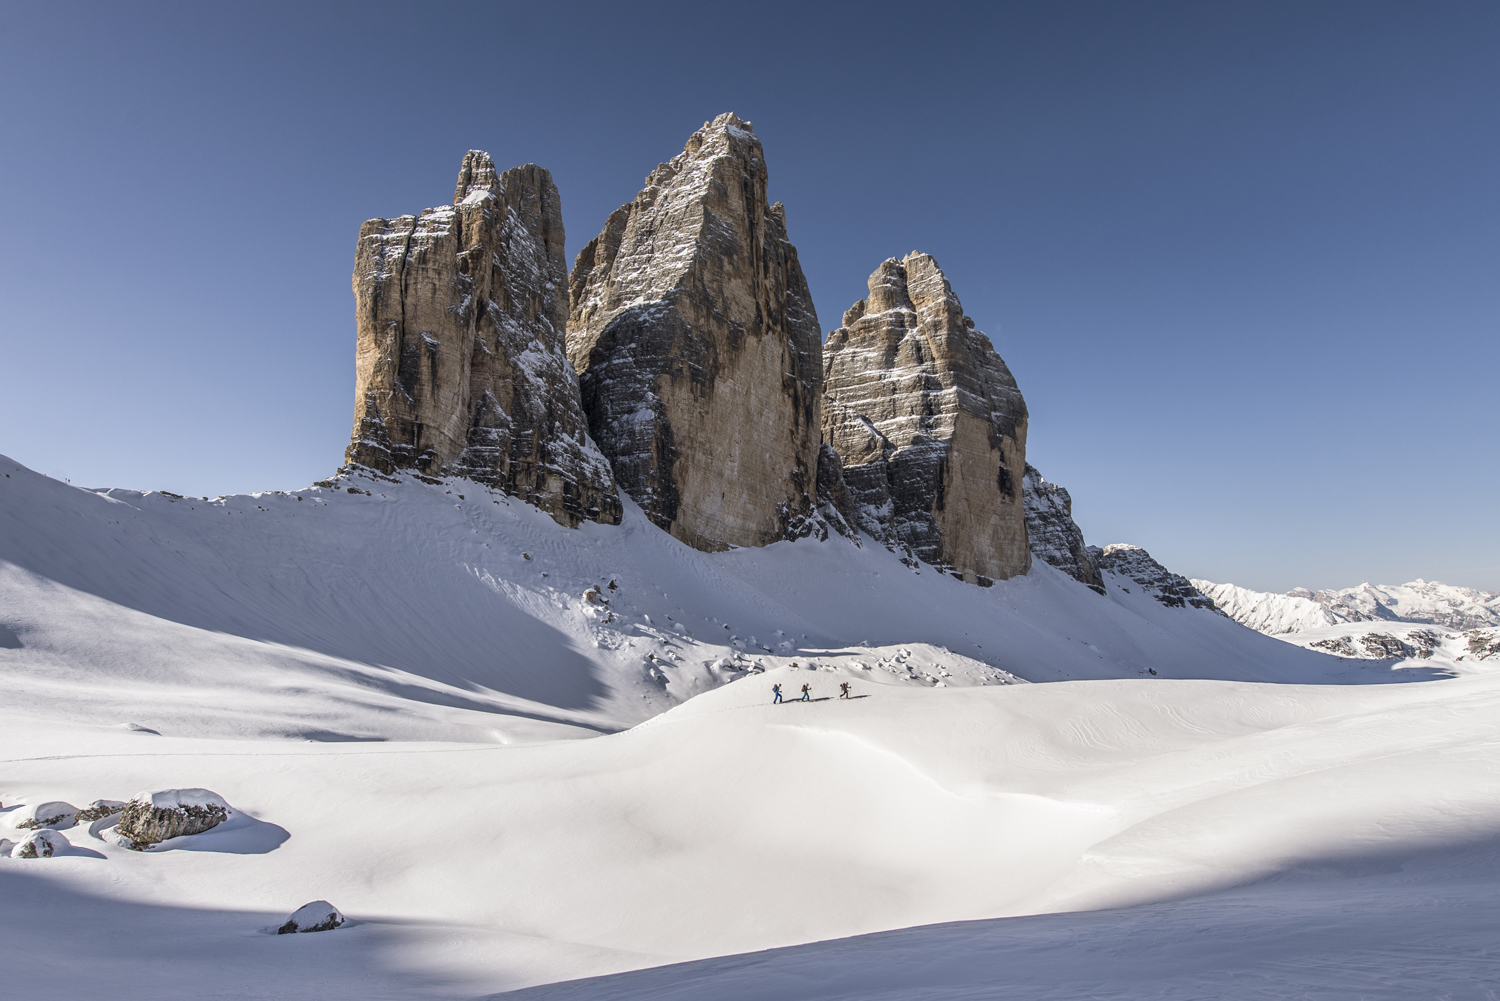 A story of three - ski tourers at the Tre Cime. Nikon D610, 14-24mm at 18mm, ISO 100, 1/640s at f/7.1. March. © James Rushforth.